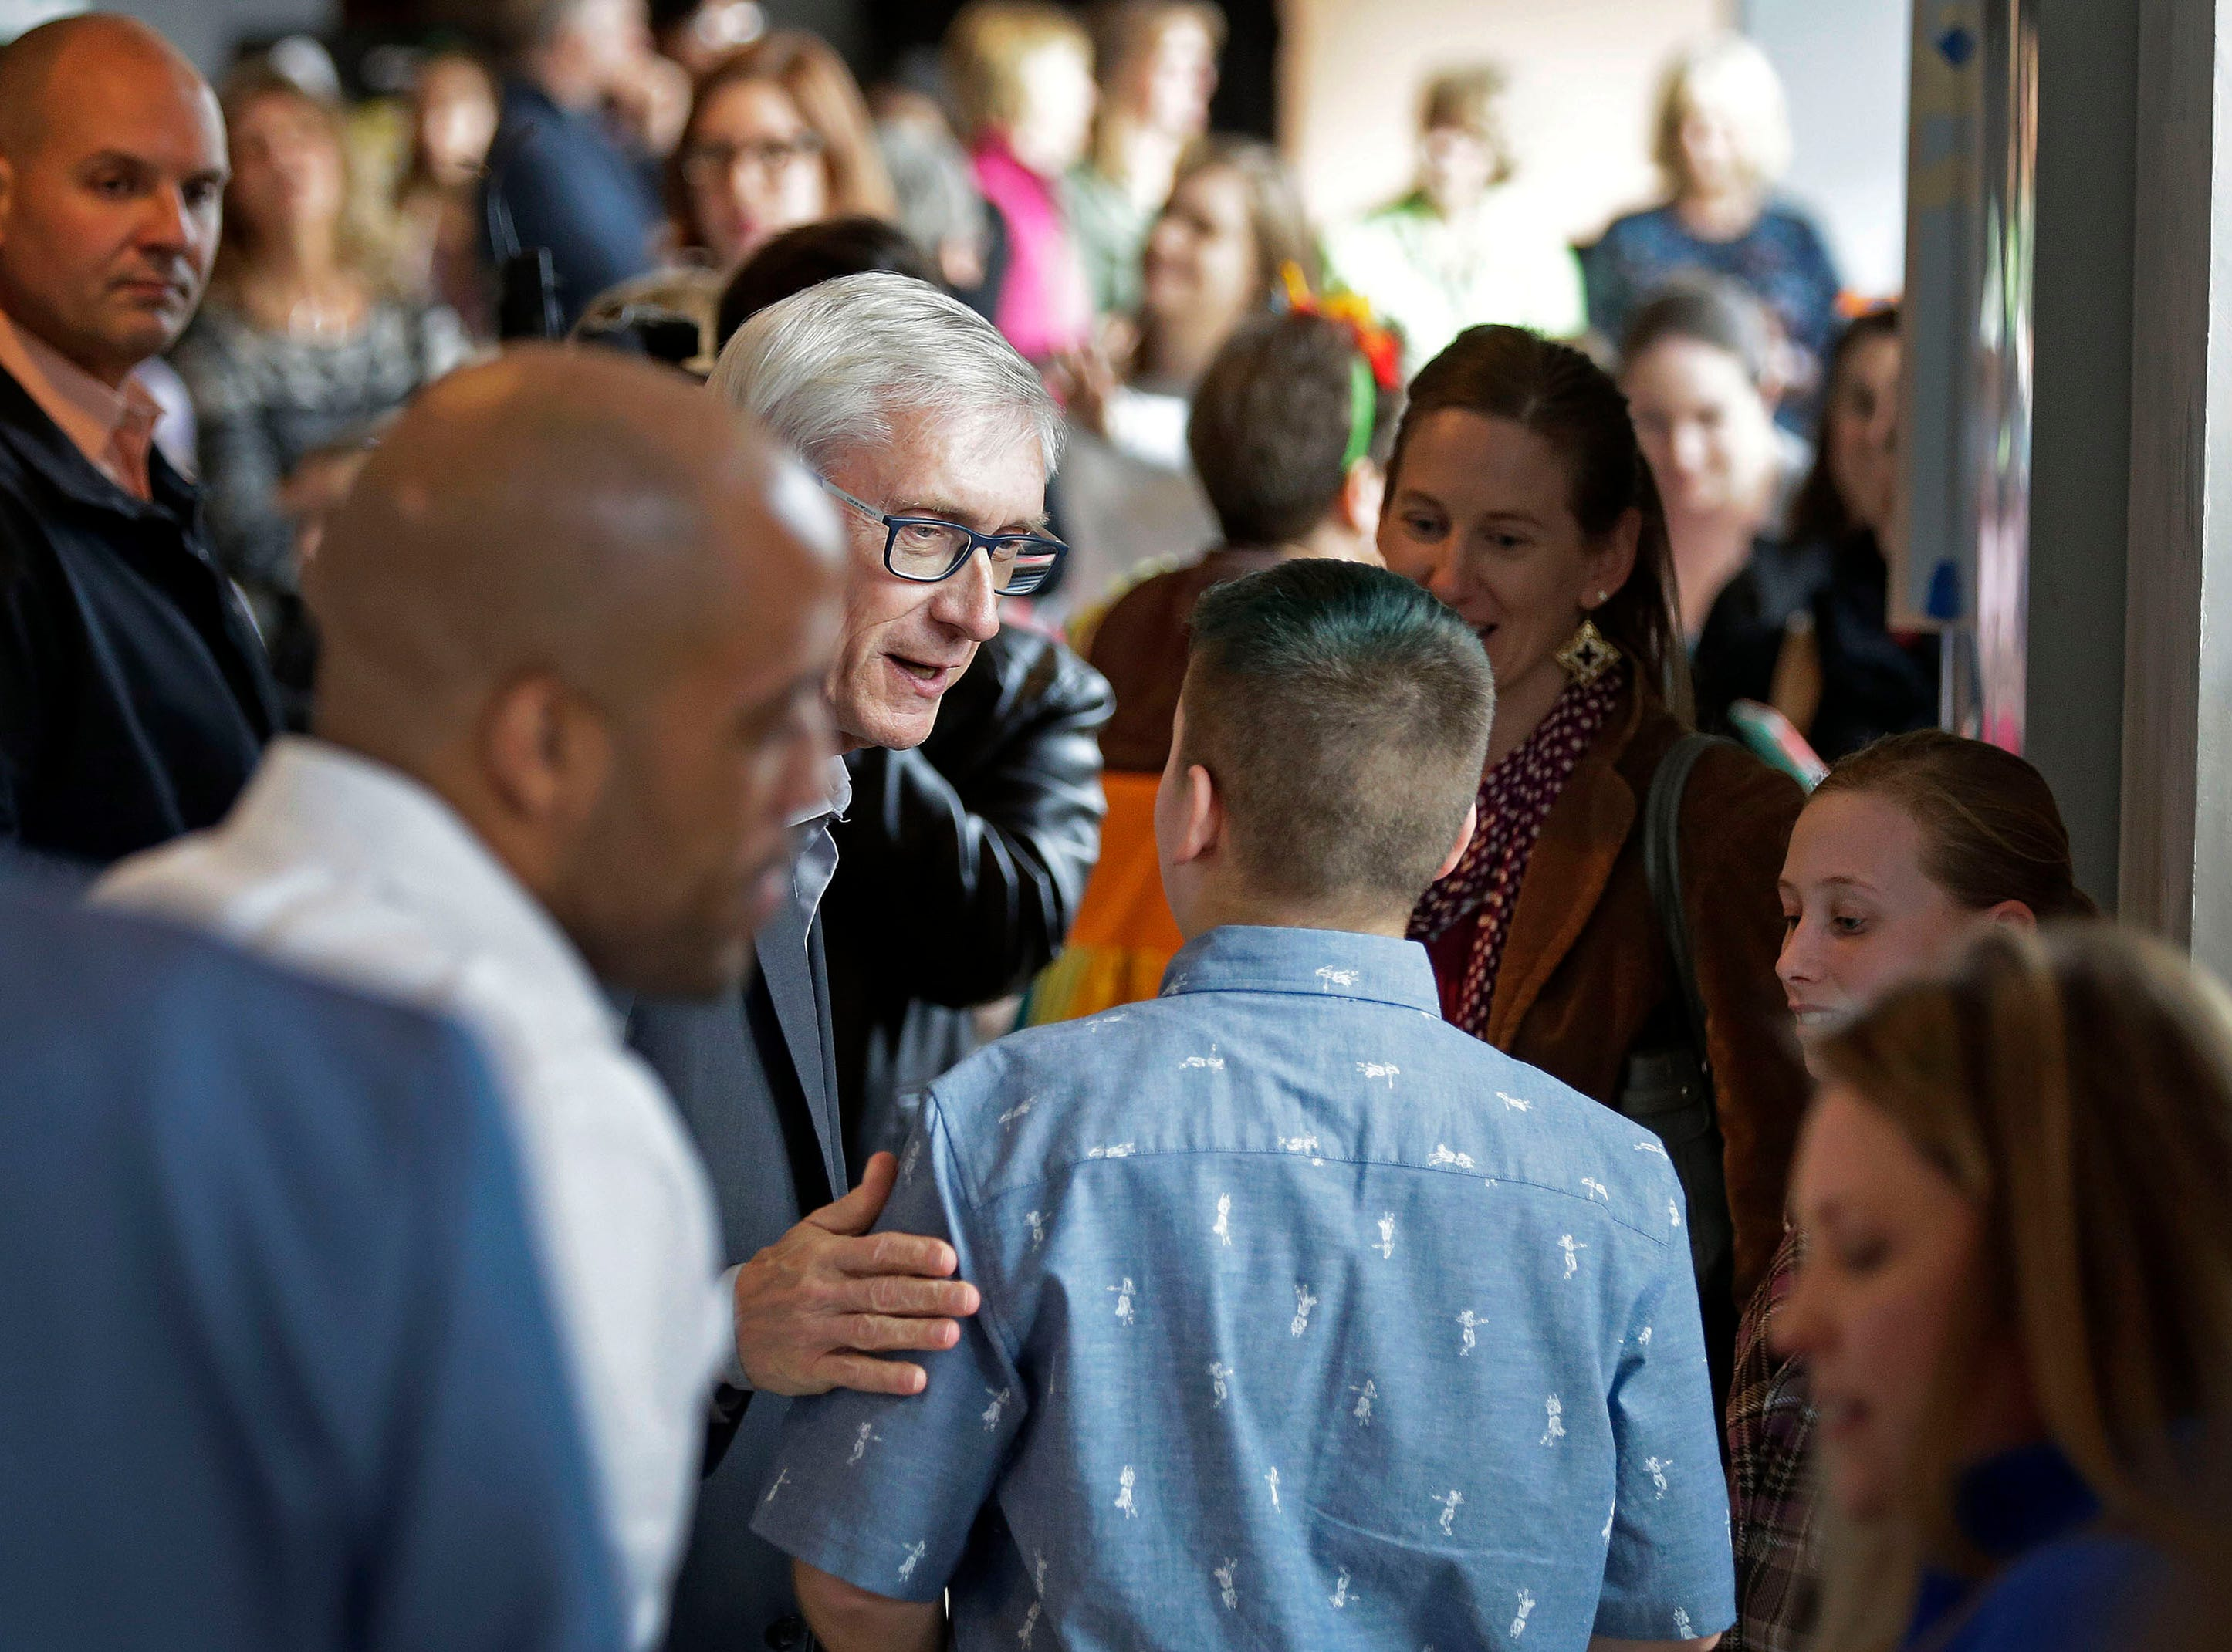 Governor-elect Tony Evers and Lieutenant Governor-elect Mandela Barnes greet attendees as they arrive to take part in the Inaugural Appleton Kids Gala Sunday, January 6, 2019, at the Fox Cities Performing Arts Center in Appleton, Wis. The gala was one of three over the weekend. Events were held in Madison and Milwaukee on Saturday.Ron Page/USA TODAY NETWORK-Wisconsin